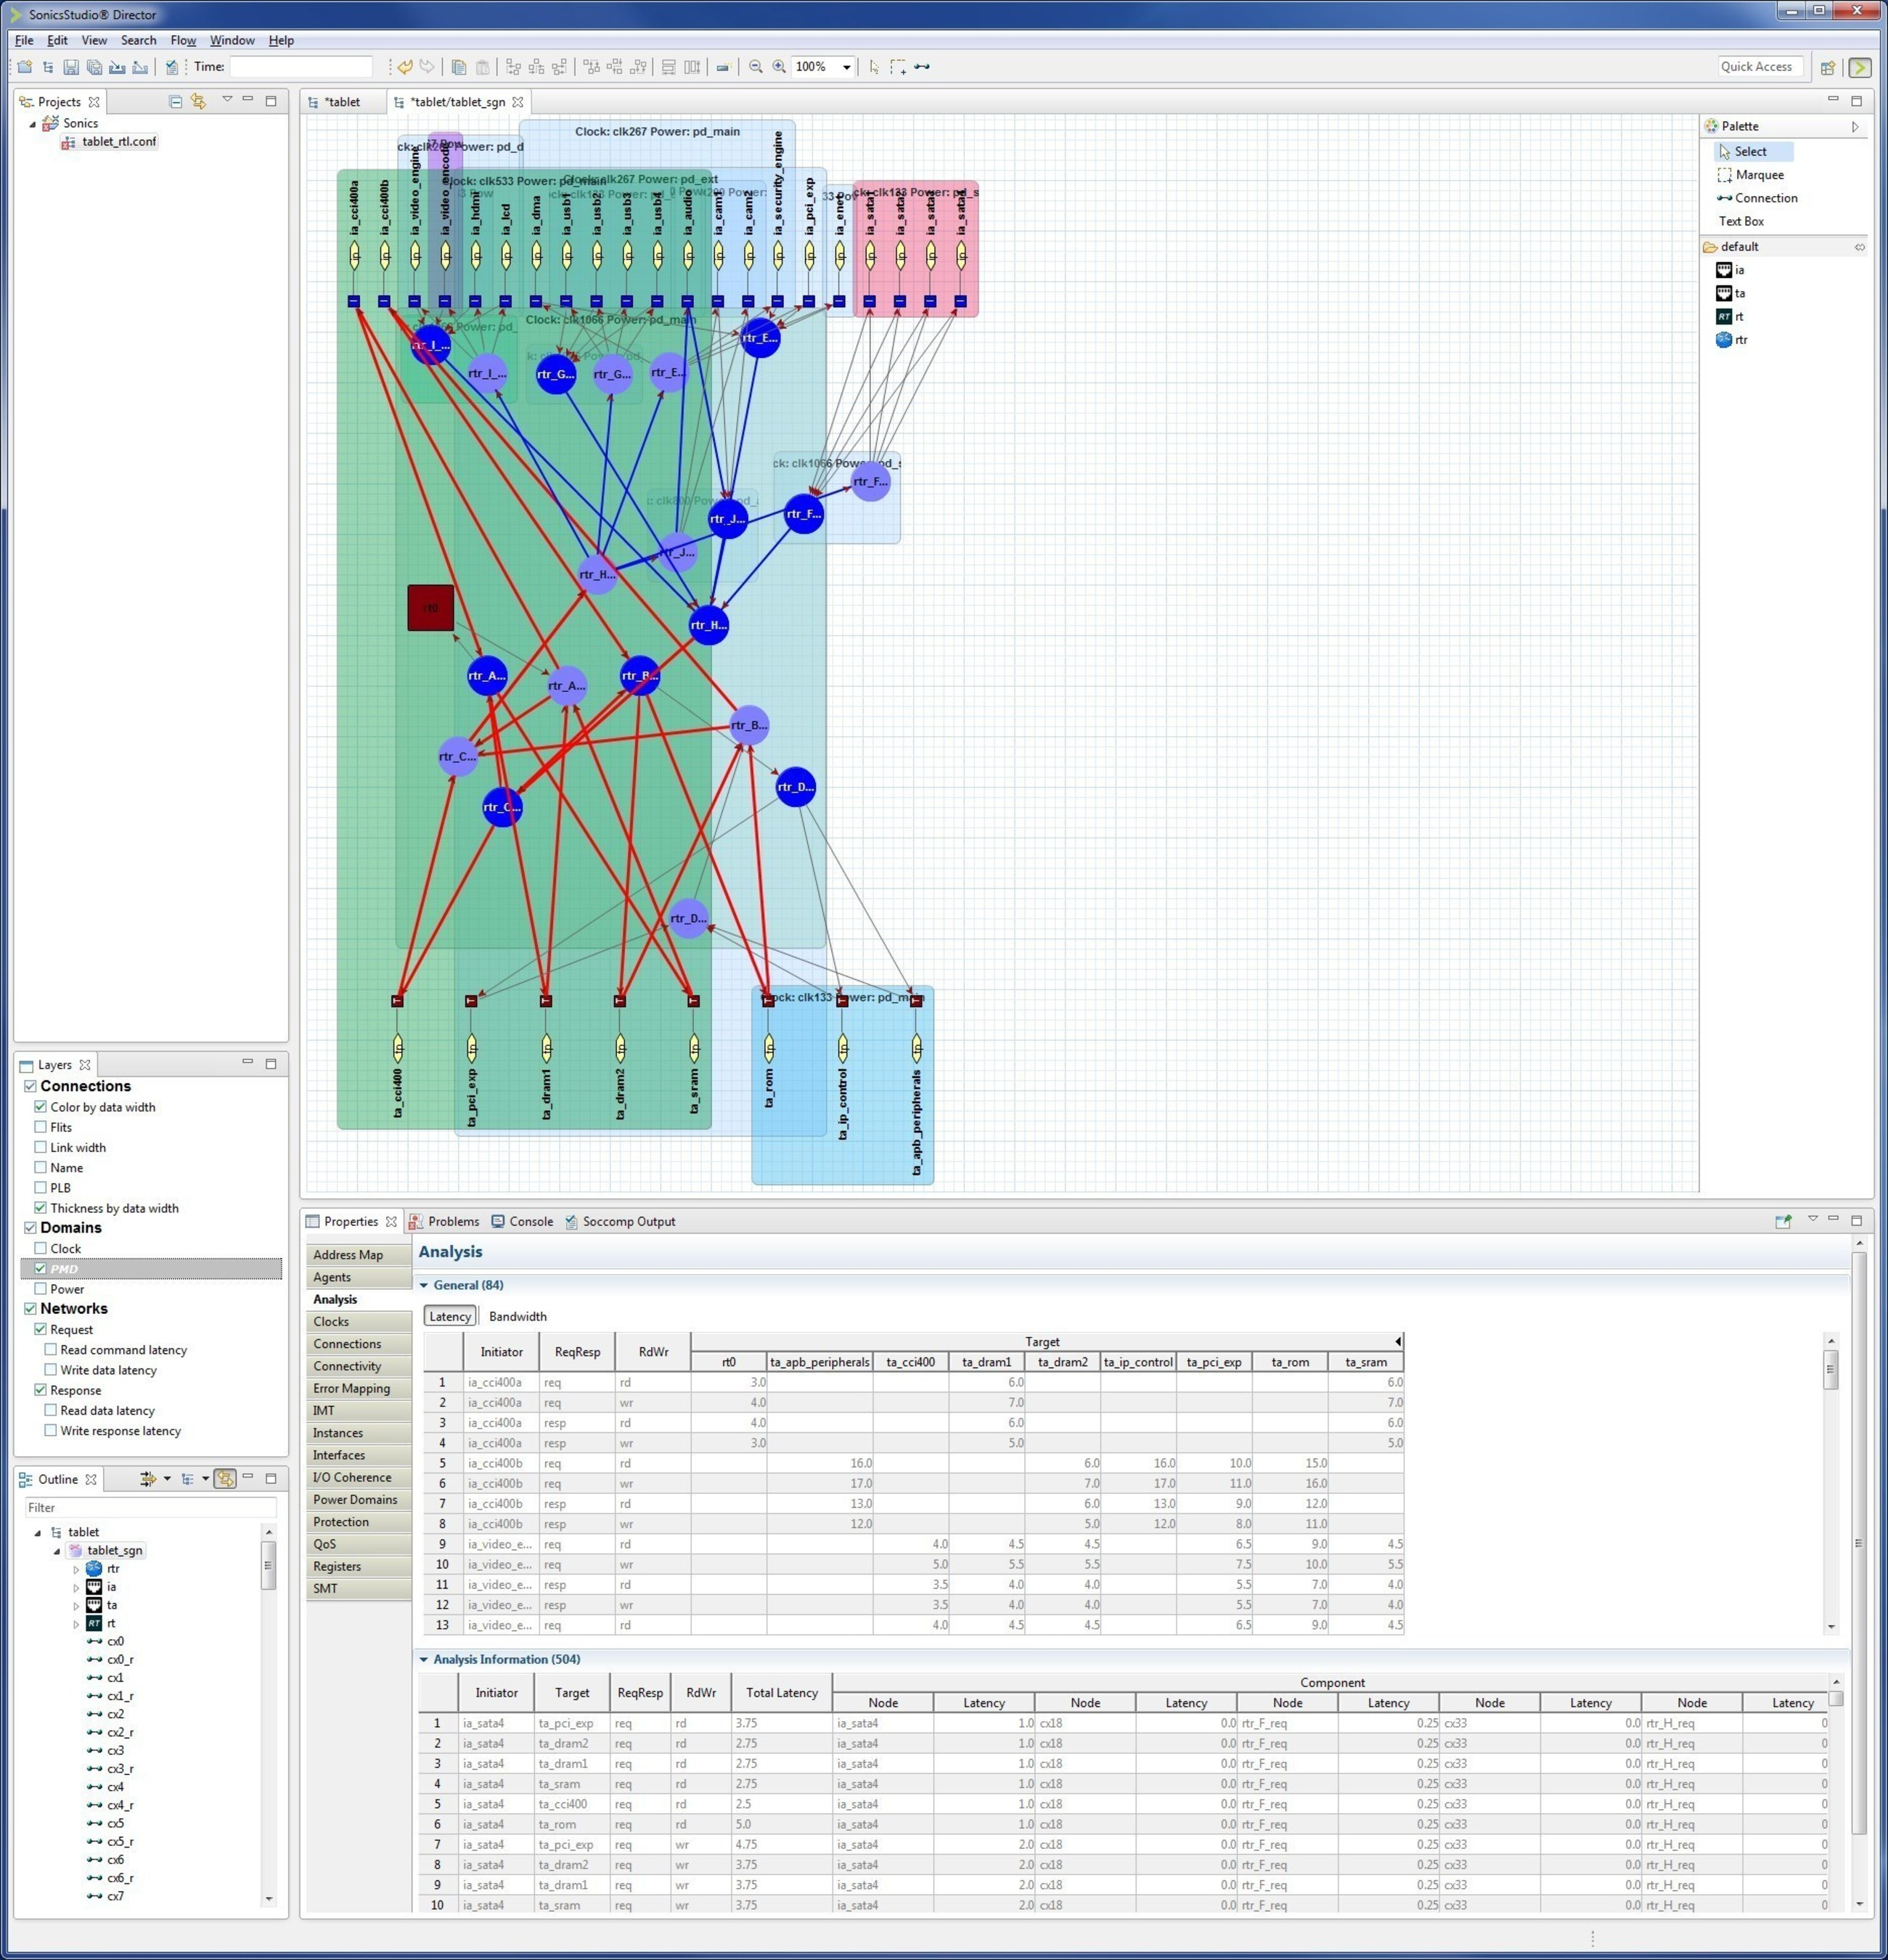 SonicsStudio 8.0 features major enhancements to the Director graphical user interface that improve design capture and analysis for SoC designers using Sonics' NoCs. This window enables designers to quickly and easily inspect the clock and power domains and the partitioning.